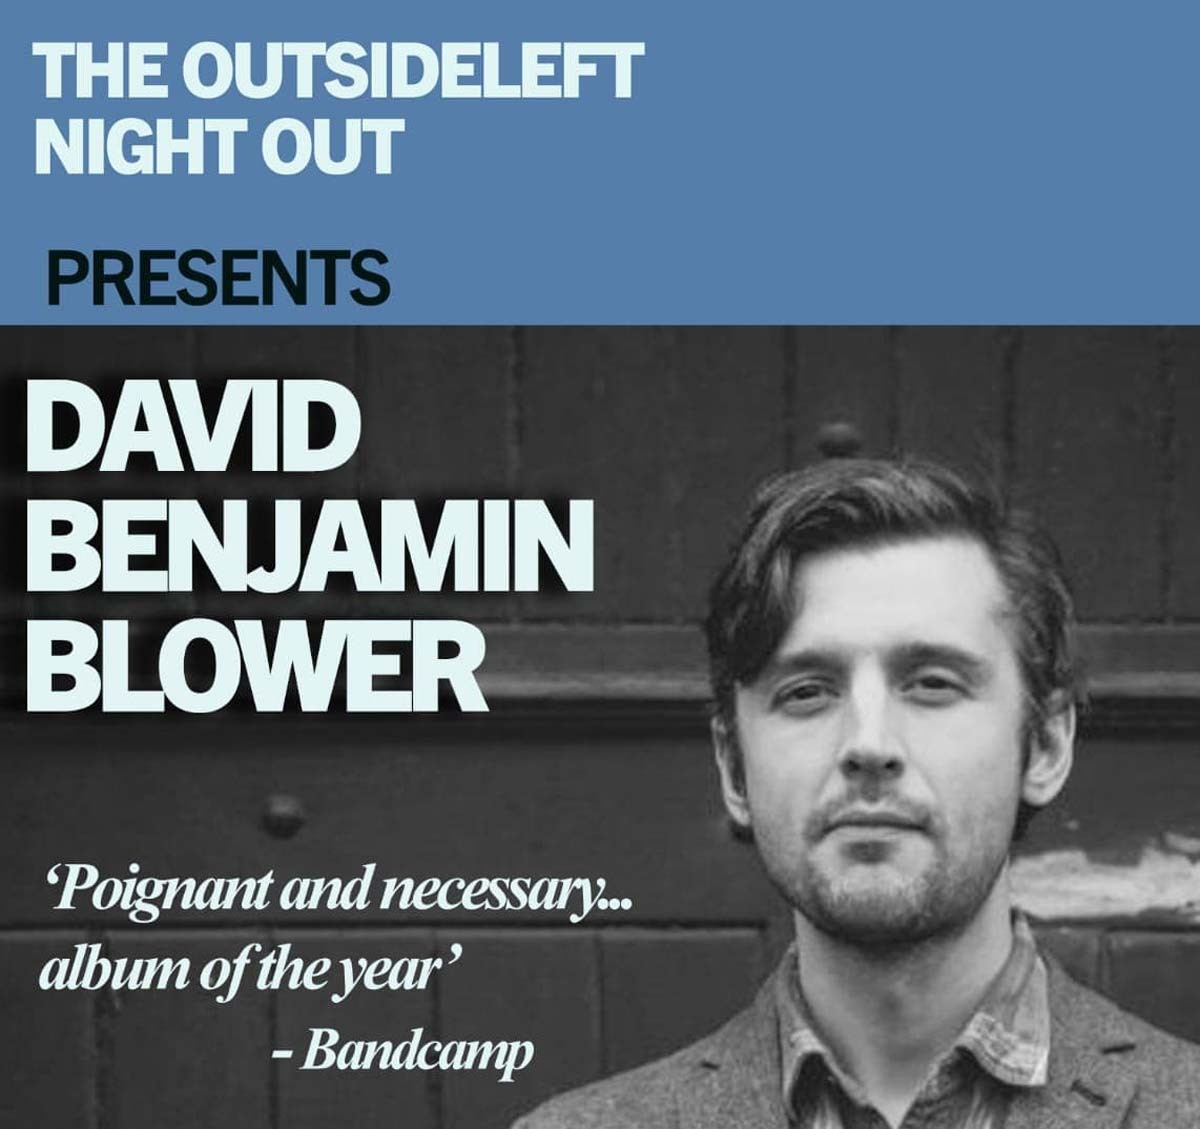 outsideleft night out, why not coffee, september 28th